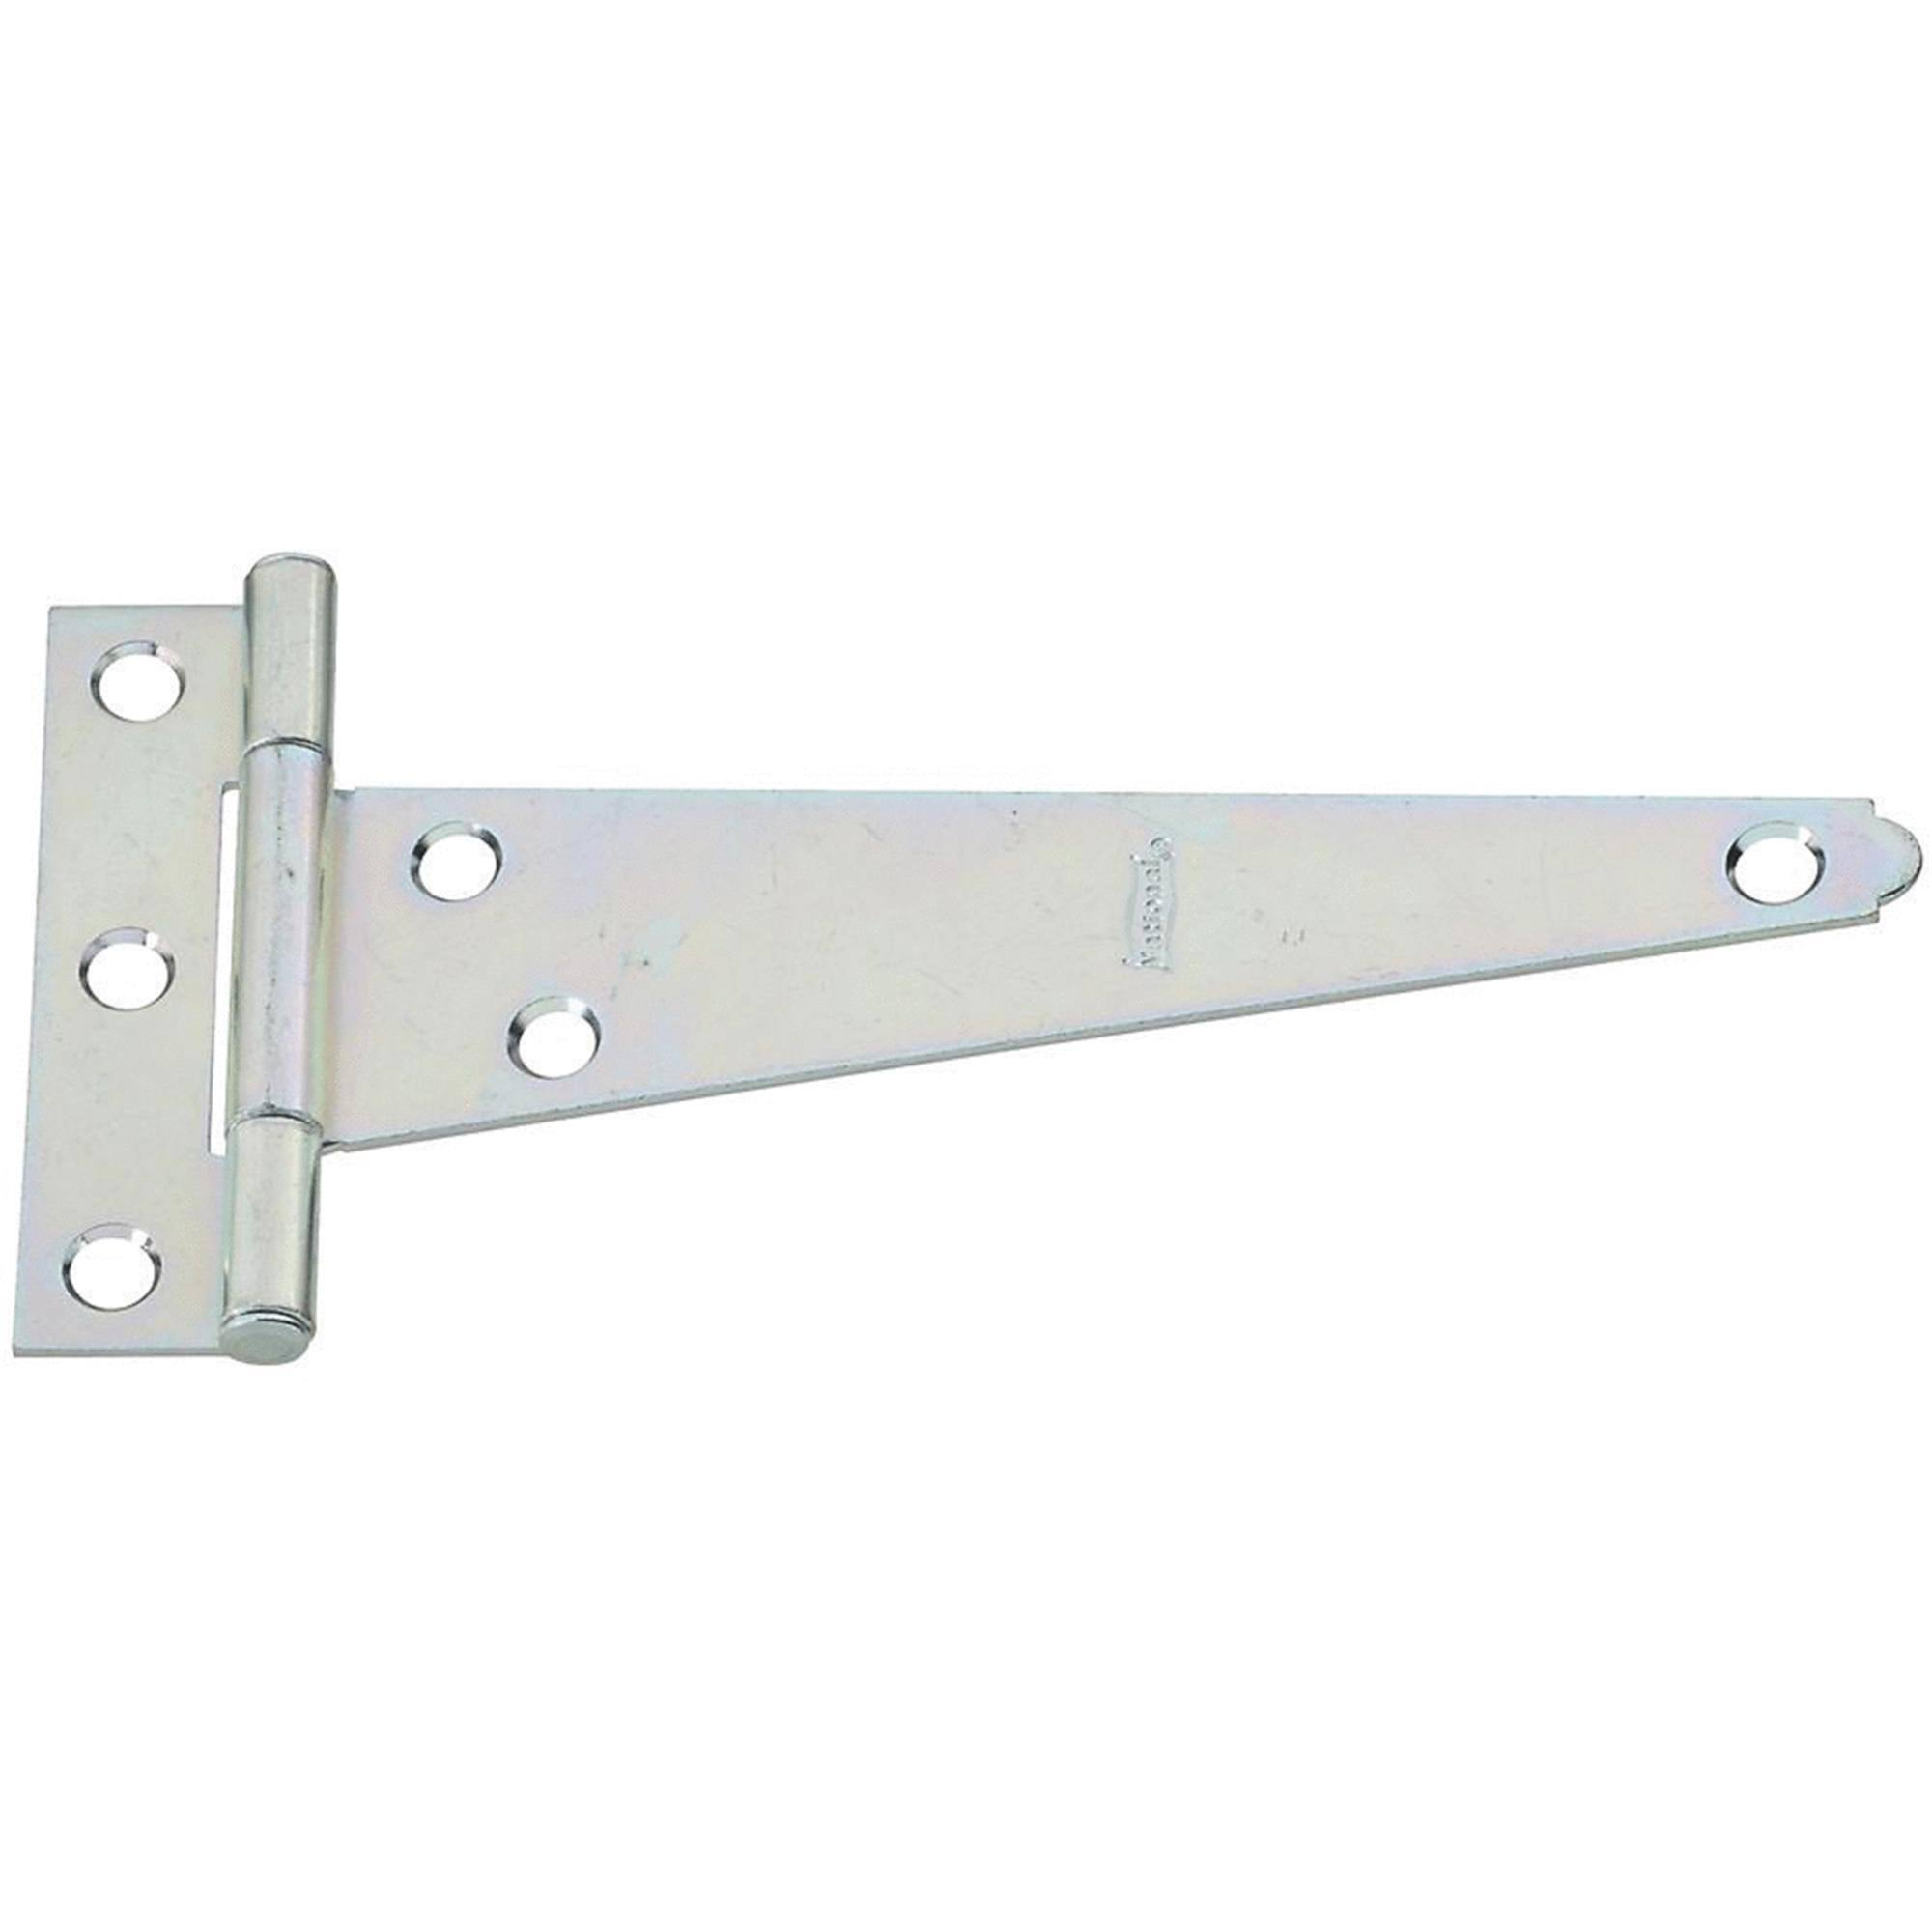 National Hardware T Hinge - Zinc Plated